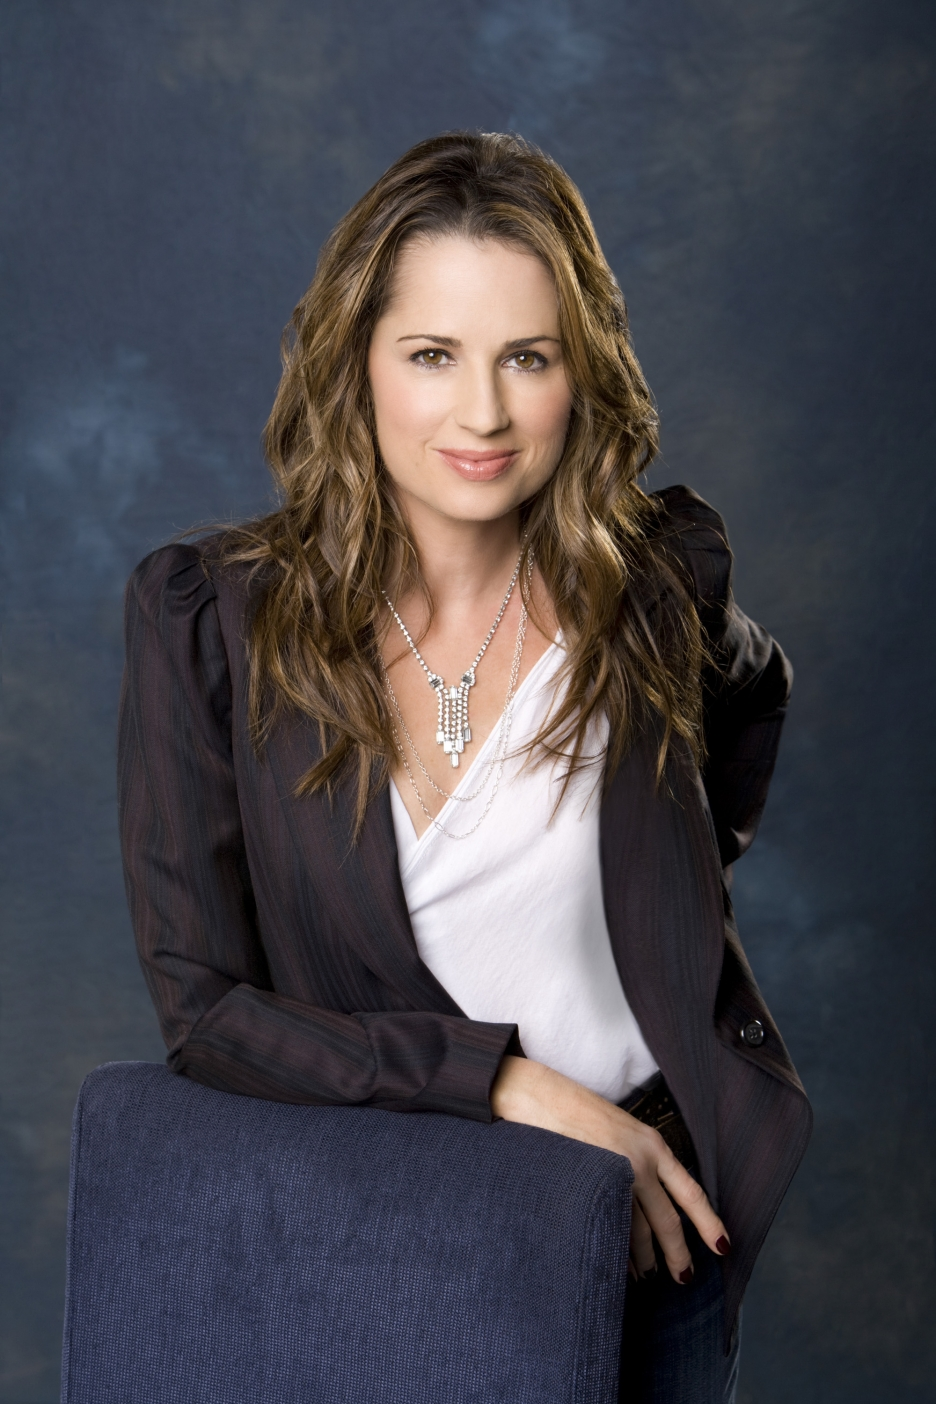 paula marshall hotpaula marshall facebook, paula marshall imdb, paula marshall 2016, paula marshall, paula marshall nip tuck, paula marshall hot, paula marshall californication, paula marshall net worth, paula marshall bama, paula marshall and danny nucci, paula marshall author, paula marshall instagram, paula marshall two and a half, paula marshall images